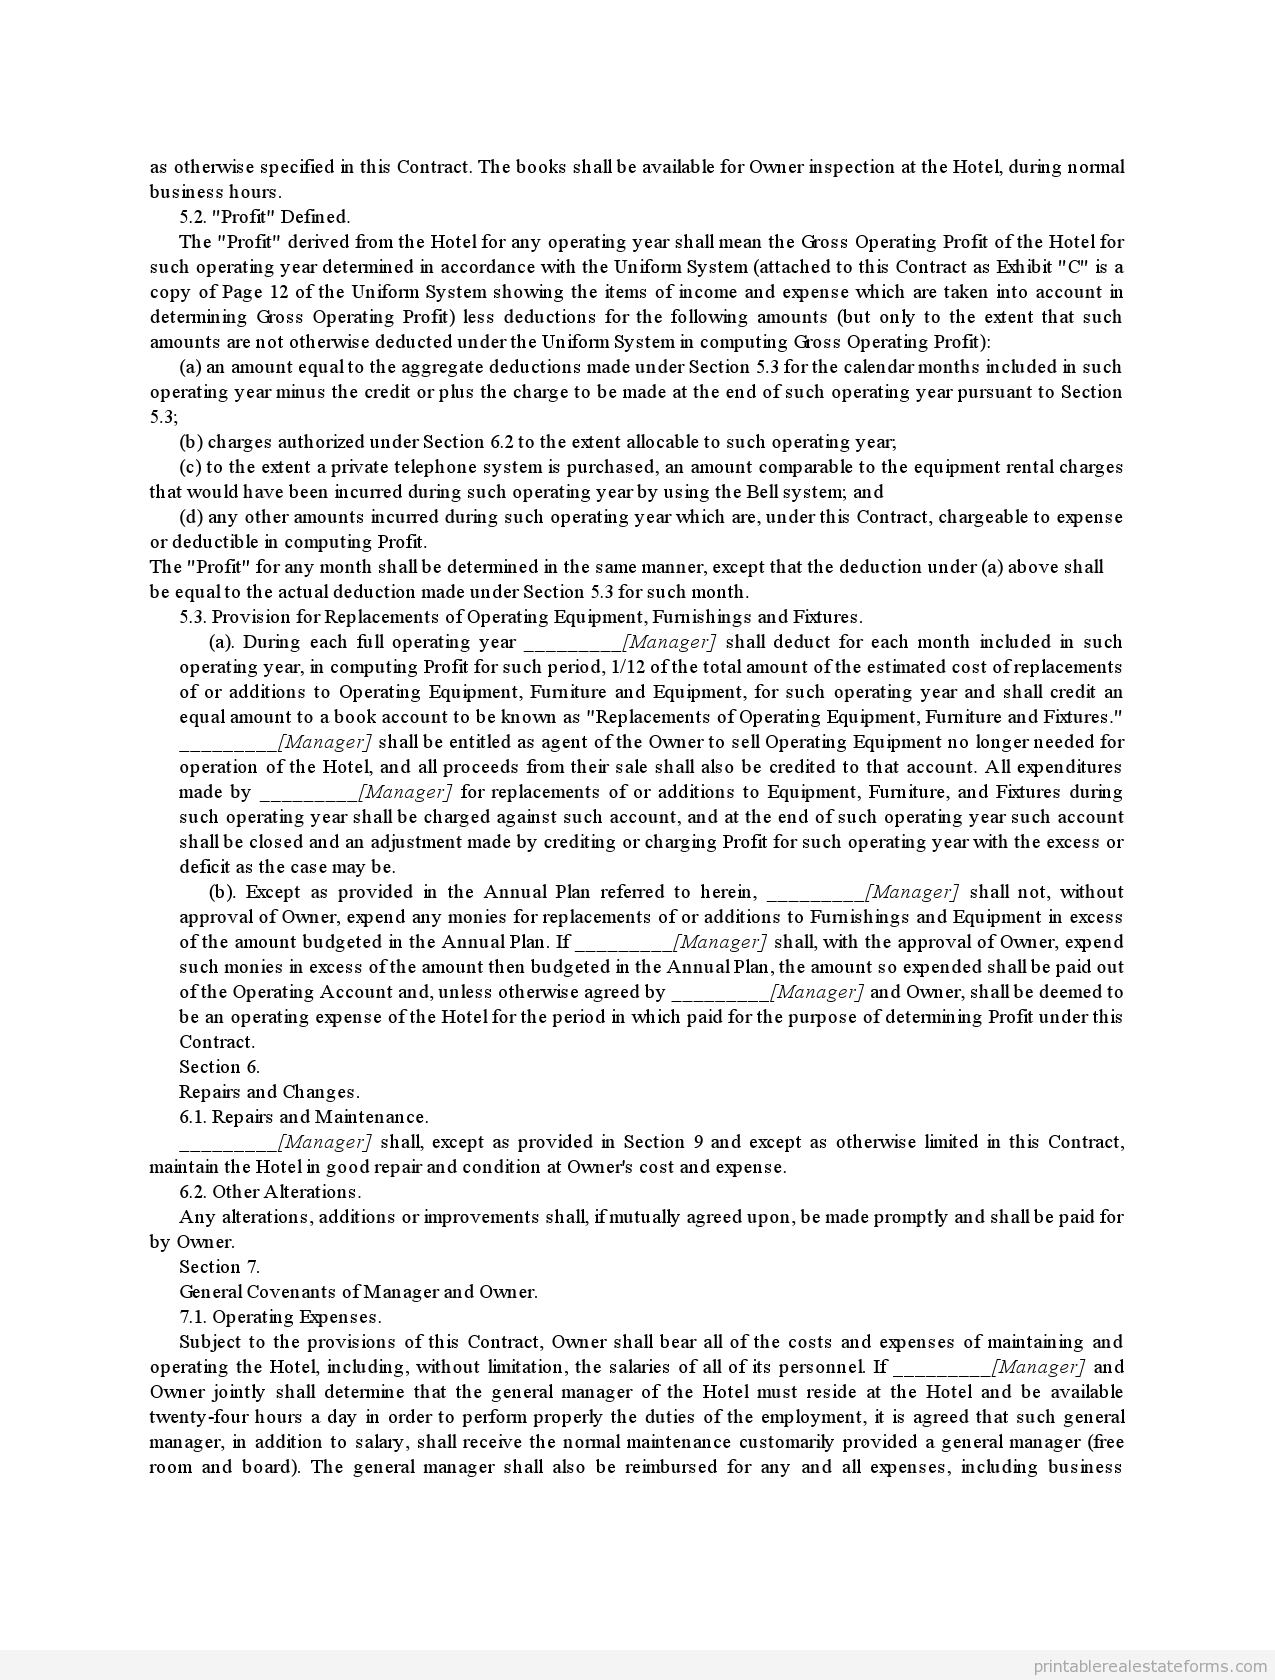 Sample Printable management contract for major hotel with ...